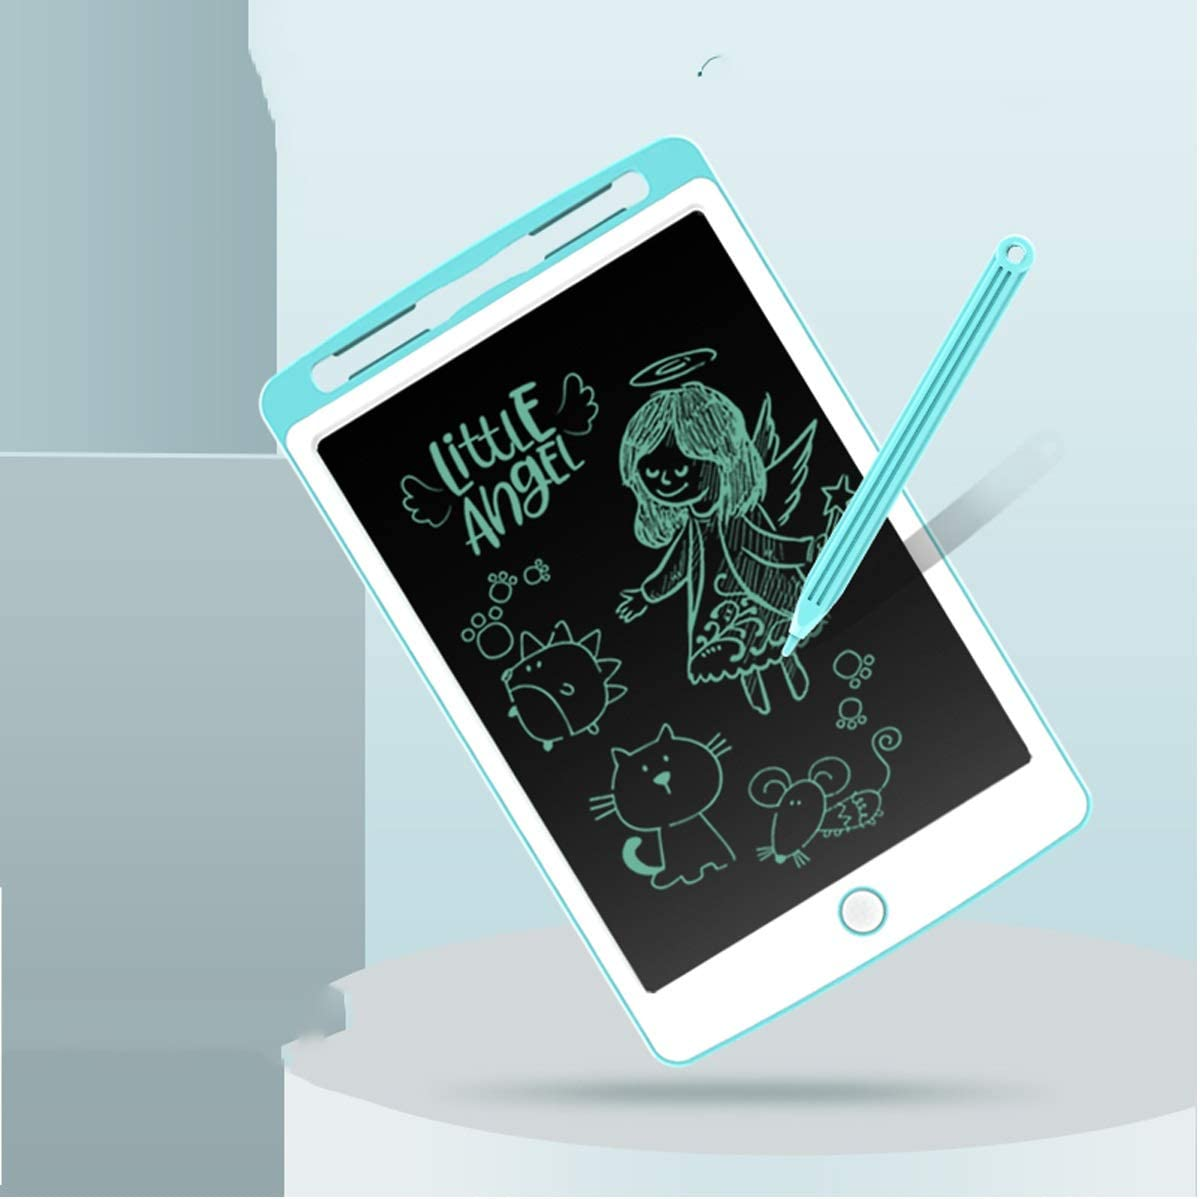 Smart Graffiti Draft Electronic Tablet Artboard Hand Haoyushangmao LCD Tablet Paint Board Erasable Blue Sketchpad White Color : 10.2 Blue